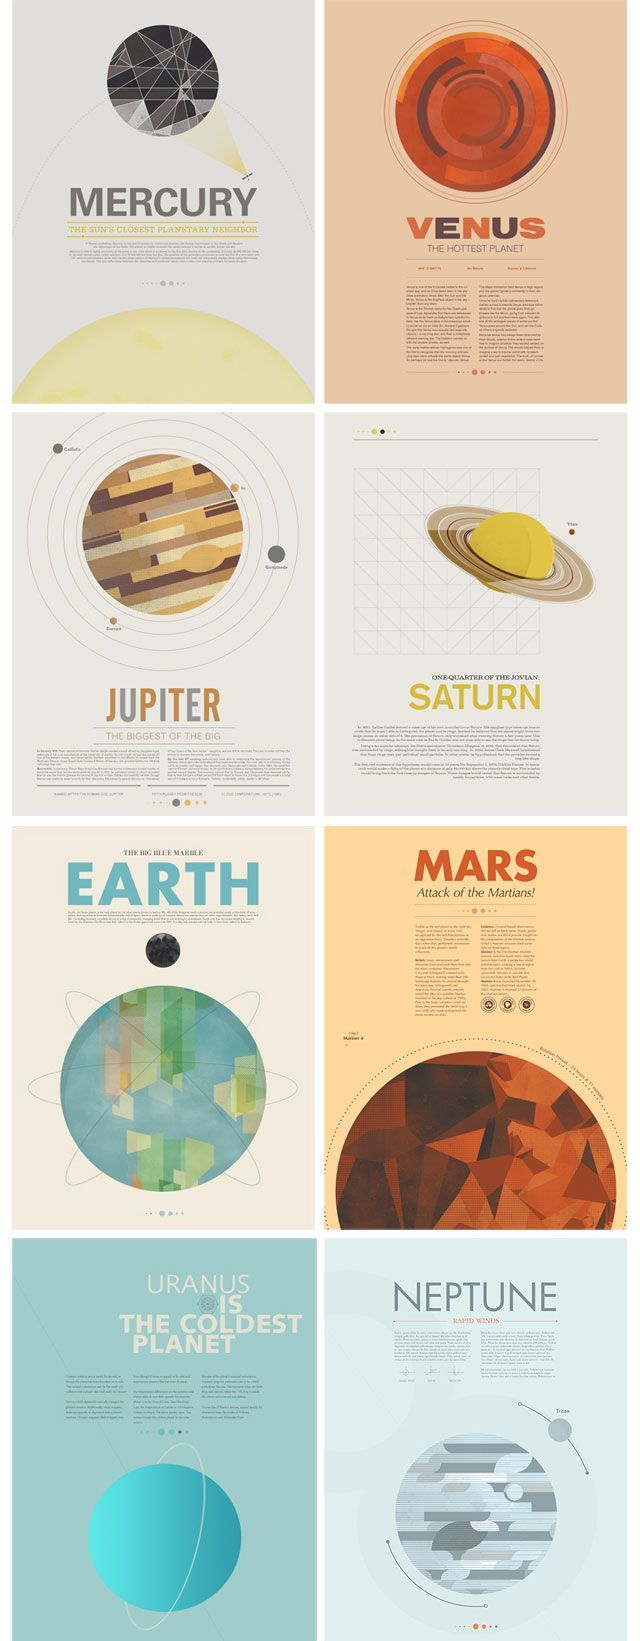 Beyond Earth: A Minimal Poster Series by Stephen Di Donato. Good ideas for space themed work.